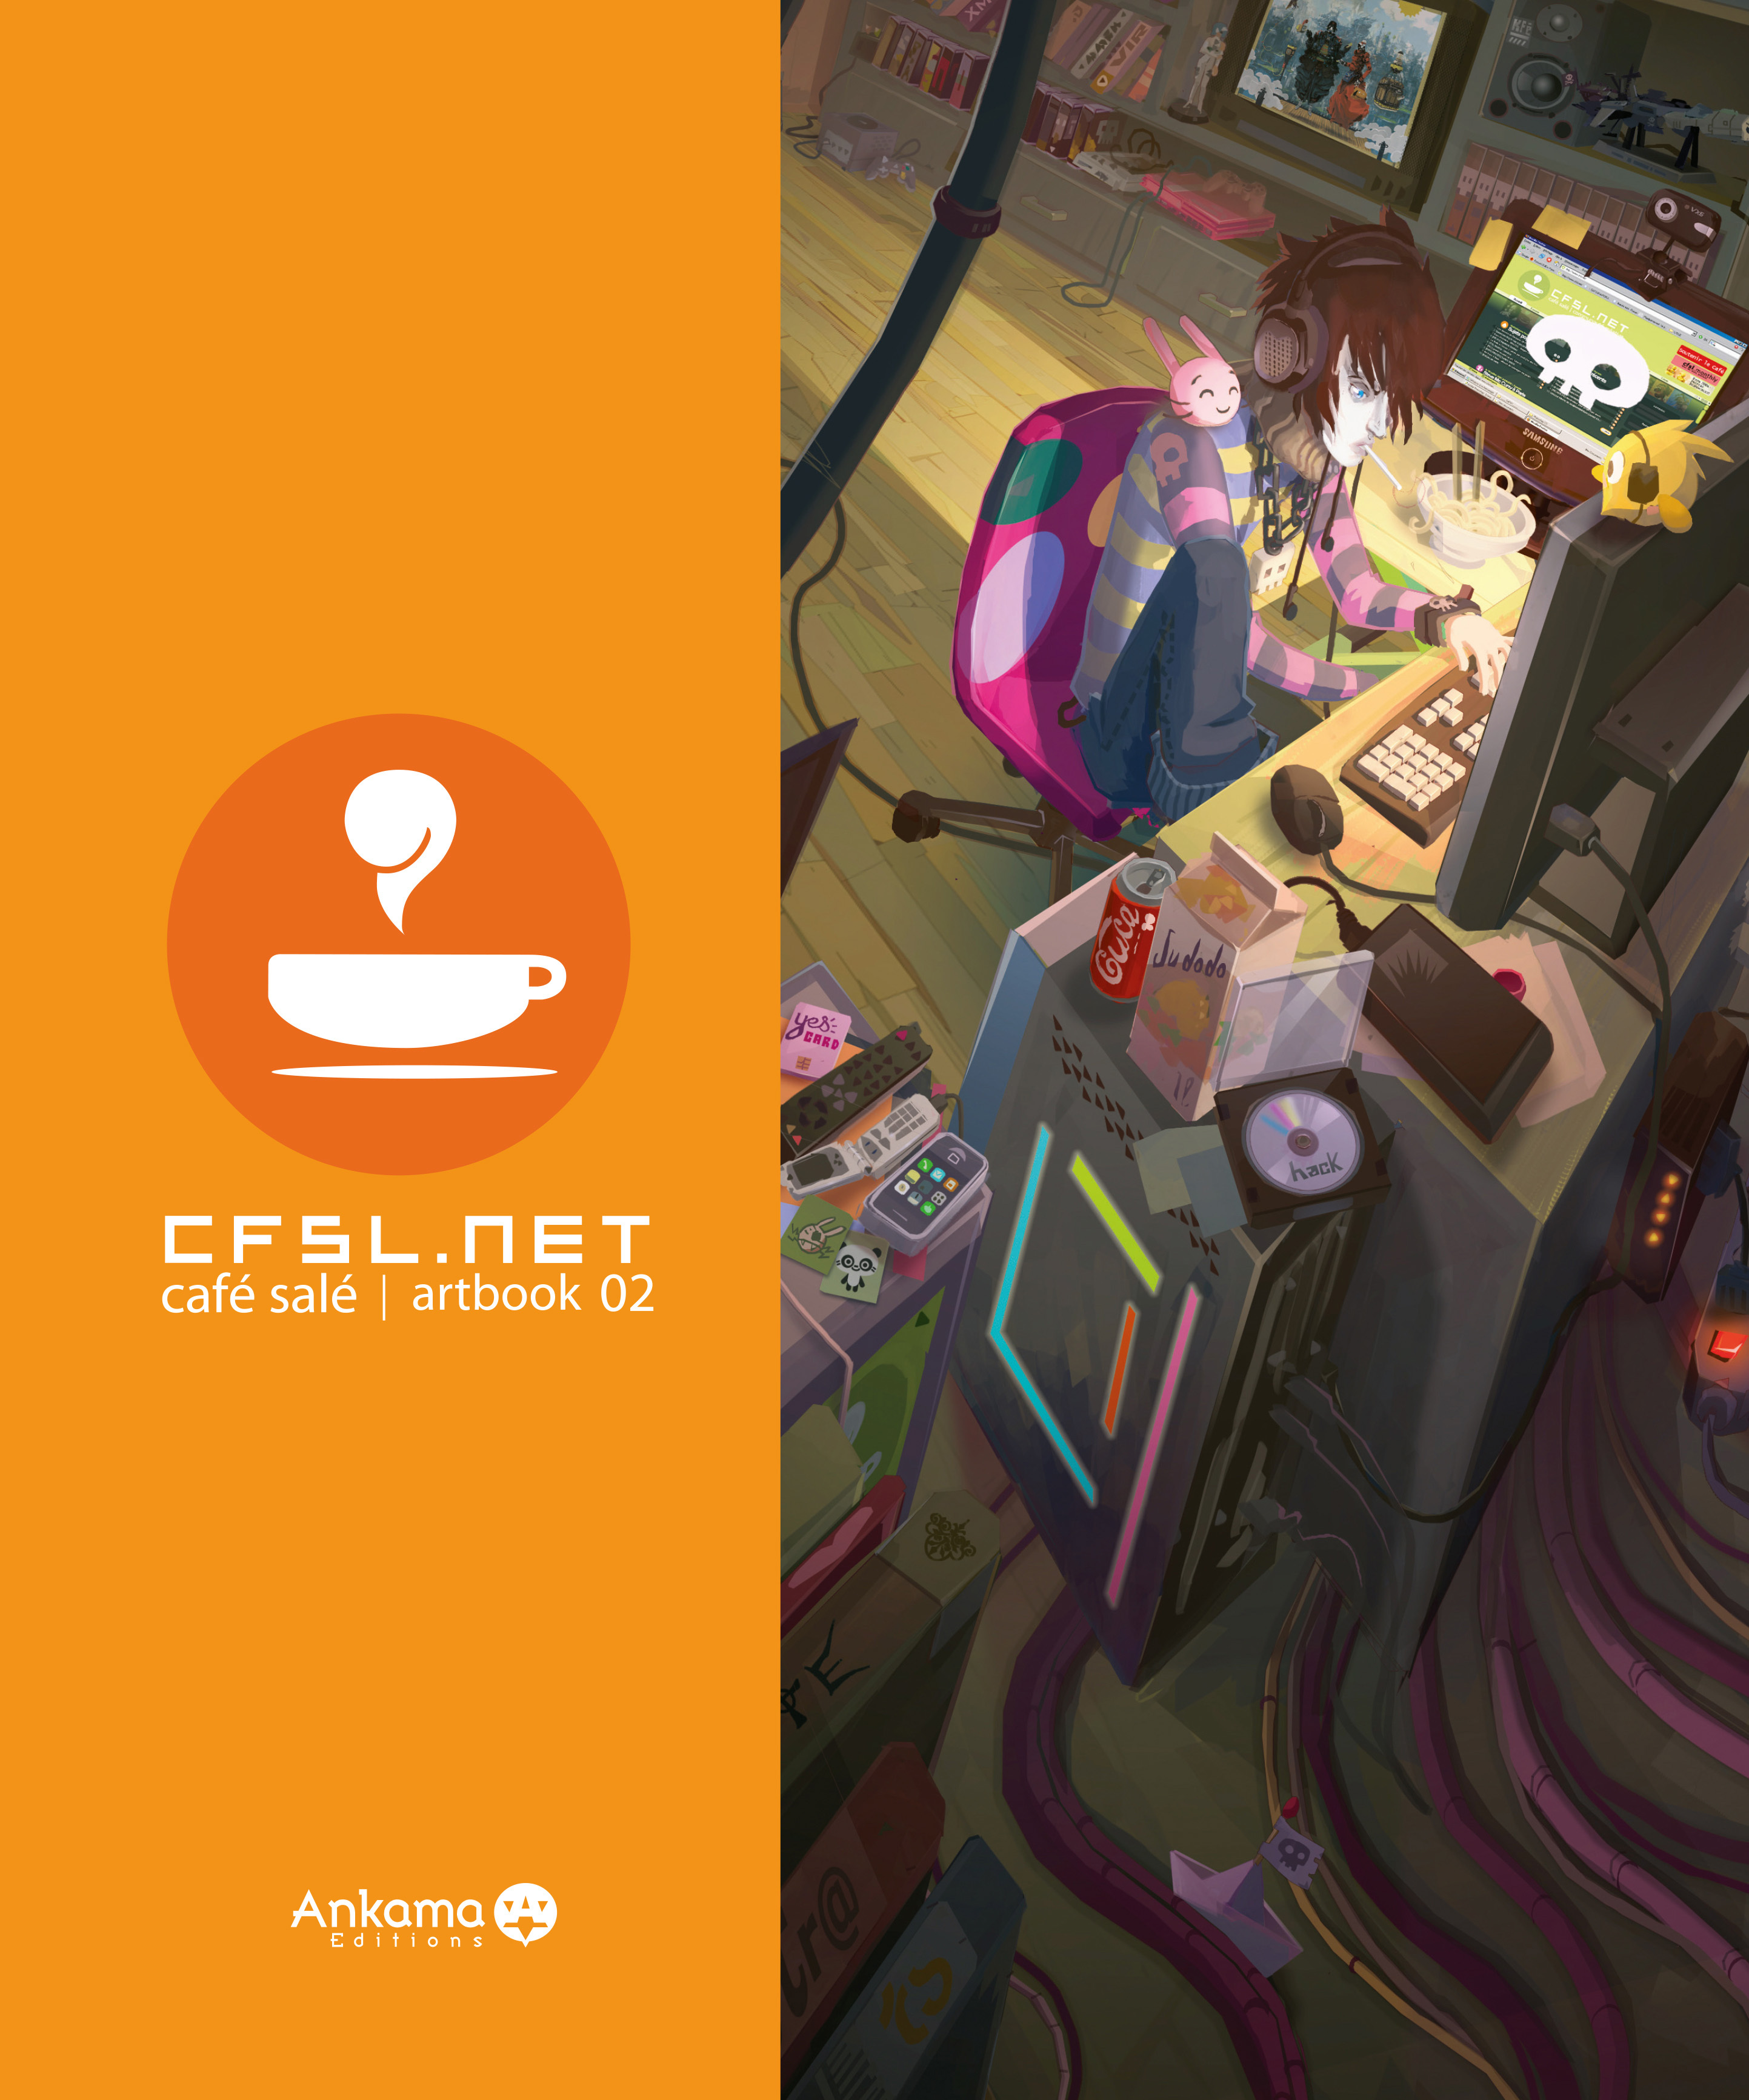 CFSL.NET CAFE SALE ARTBOOK T02